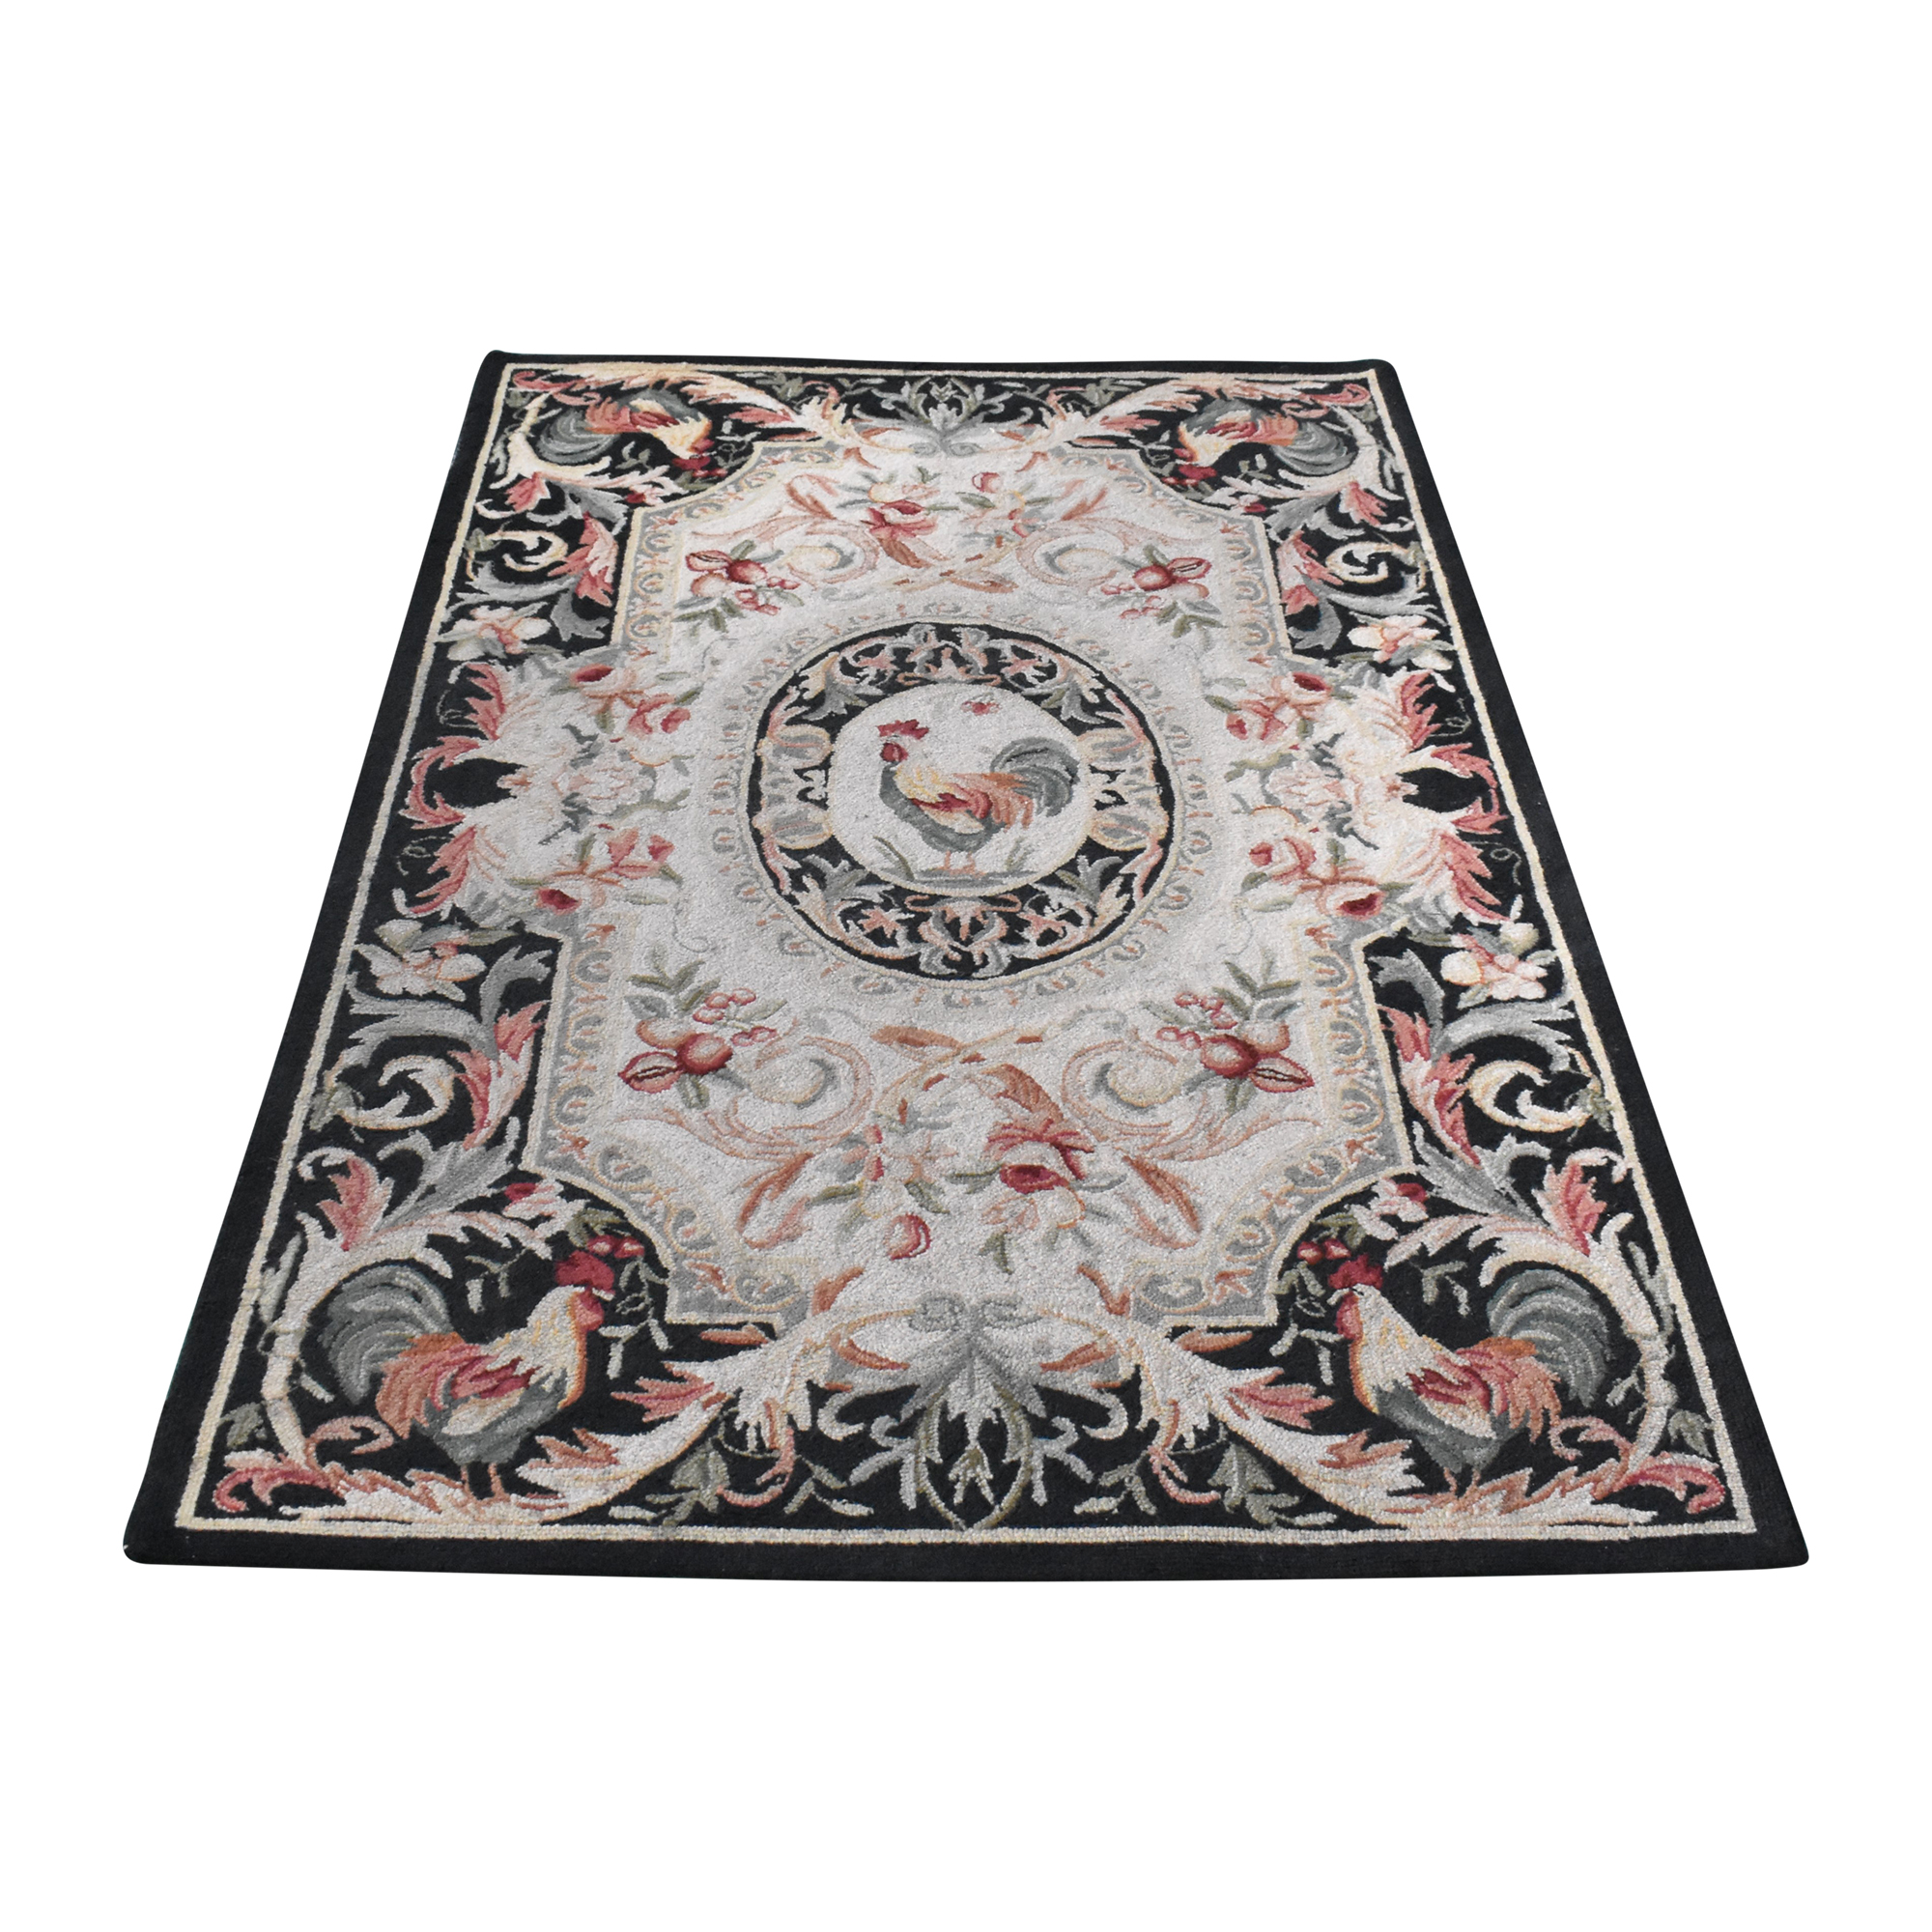 Safavieh Safavieh Chelsea Collection Area Rug Decor